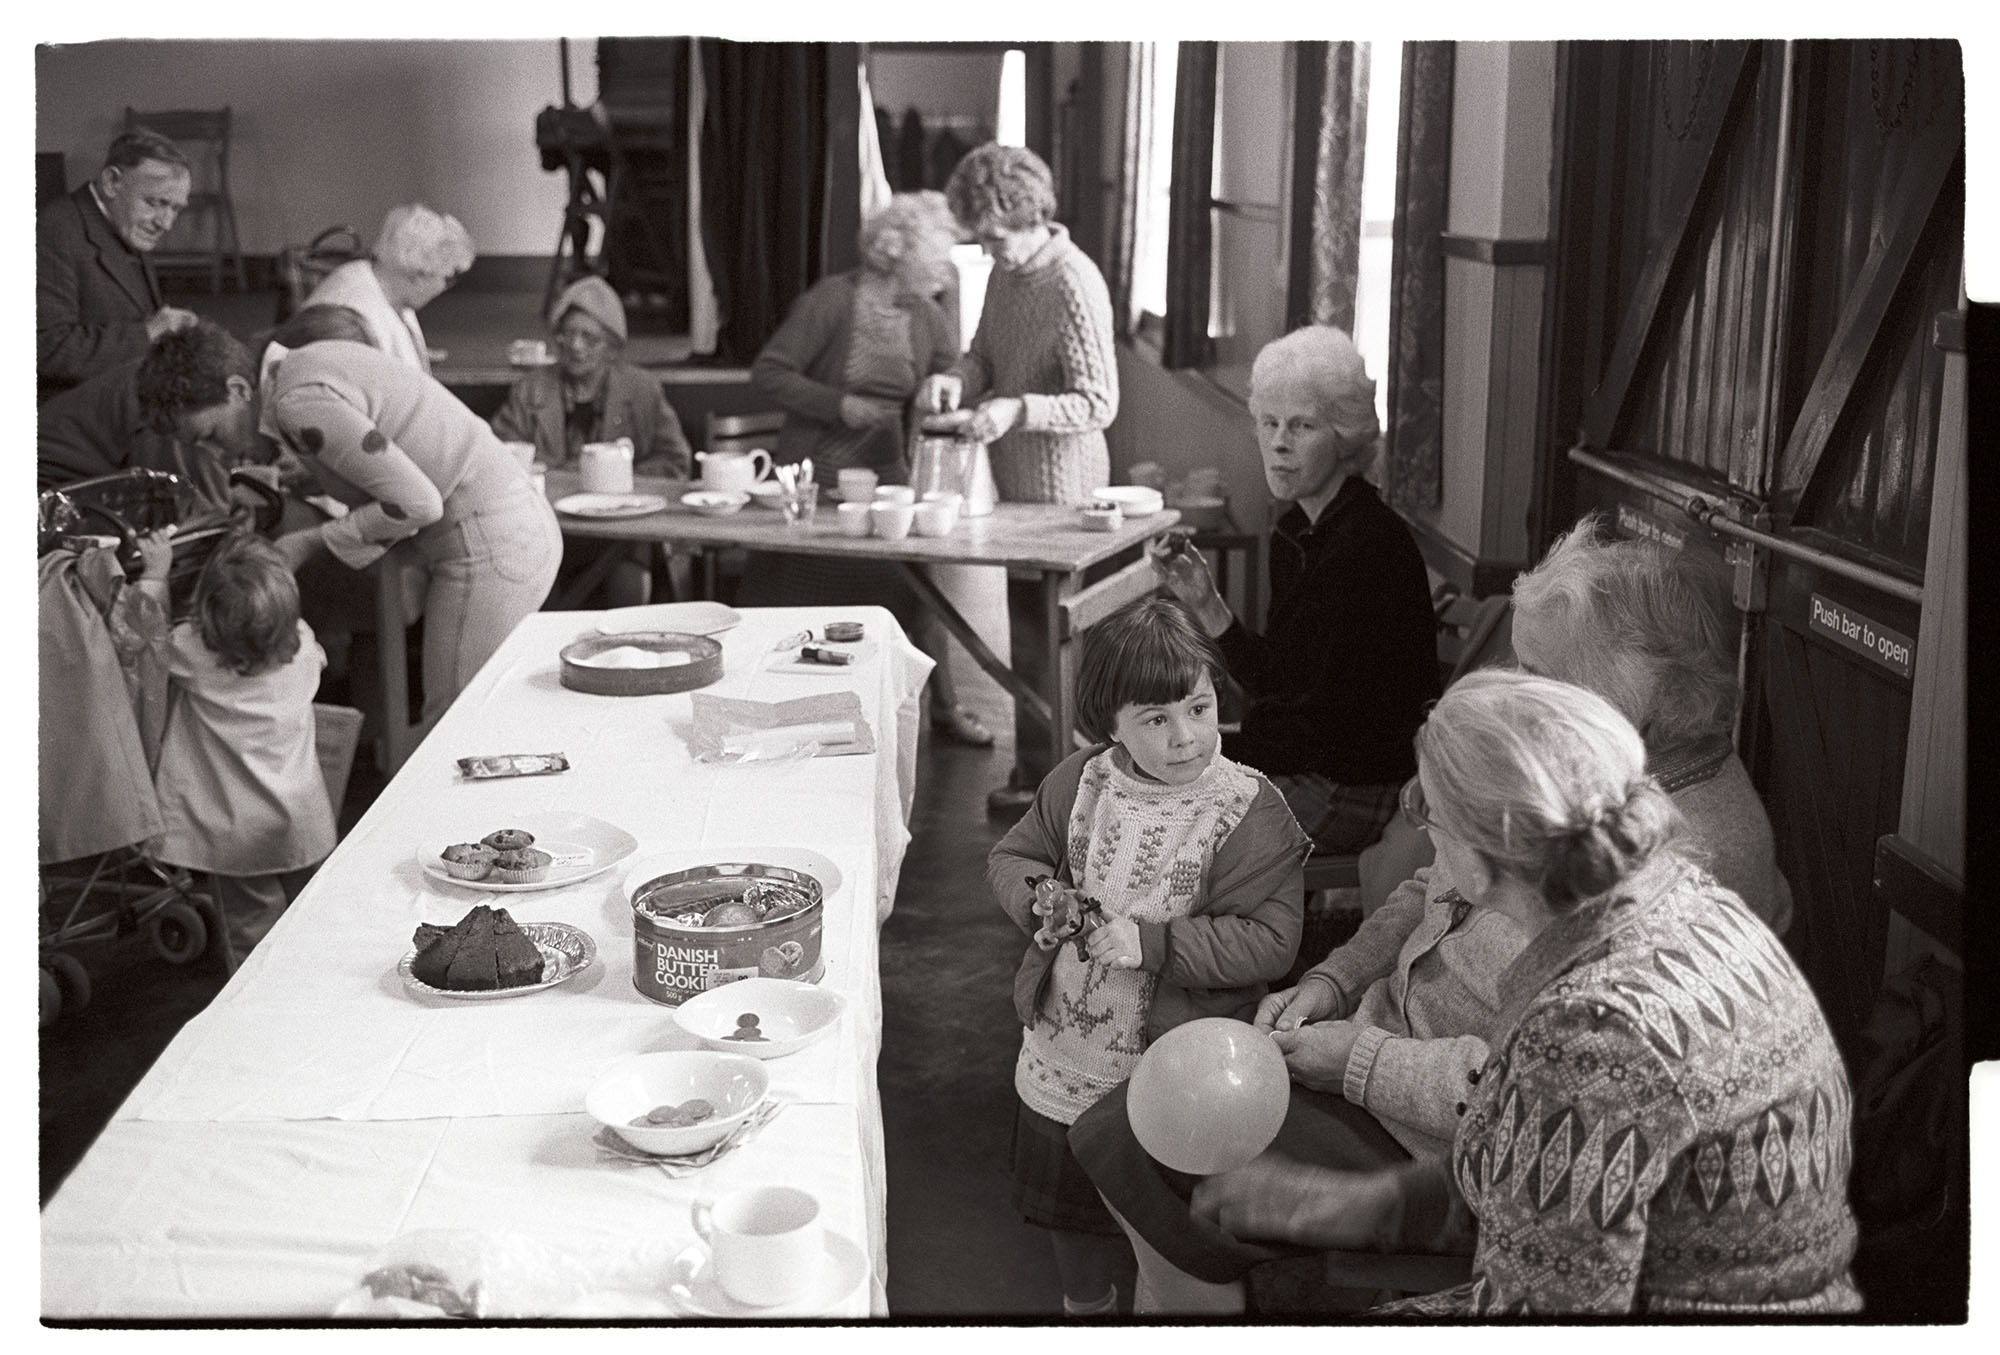 Elderly women and child at playgroup coffee morning. <br /> [Women and children at a coffee morning at Dolton playgroup in Dolton Village Hall. Two women are serving teas and coffee in the background and a young child, Jenny Agate, is talking to two older women in the foreground. One of the women is holding a balloon and cakes are on the table.]